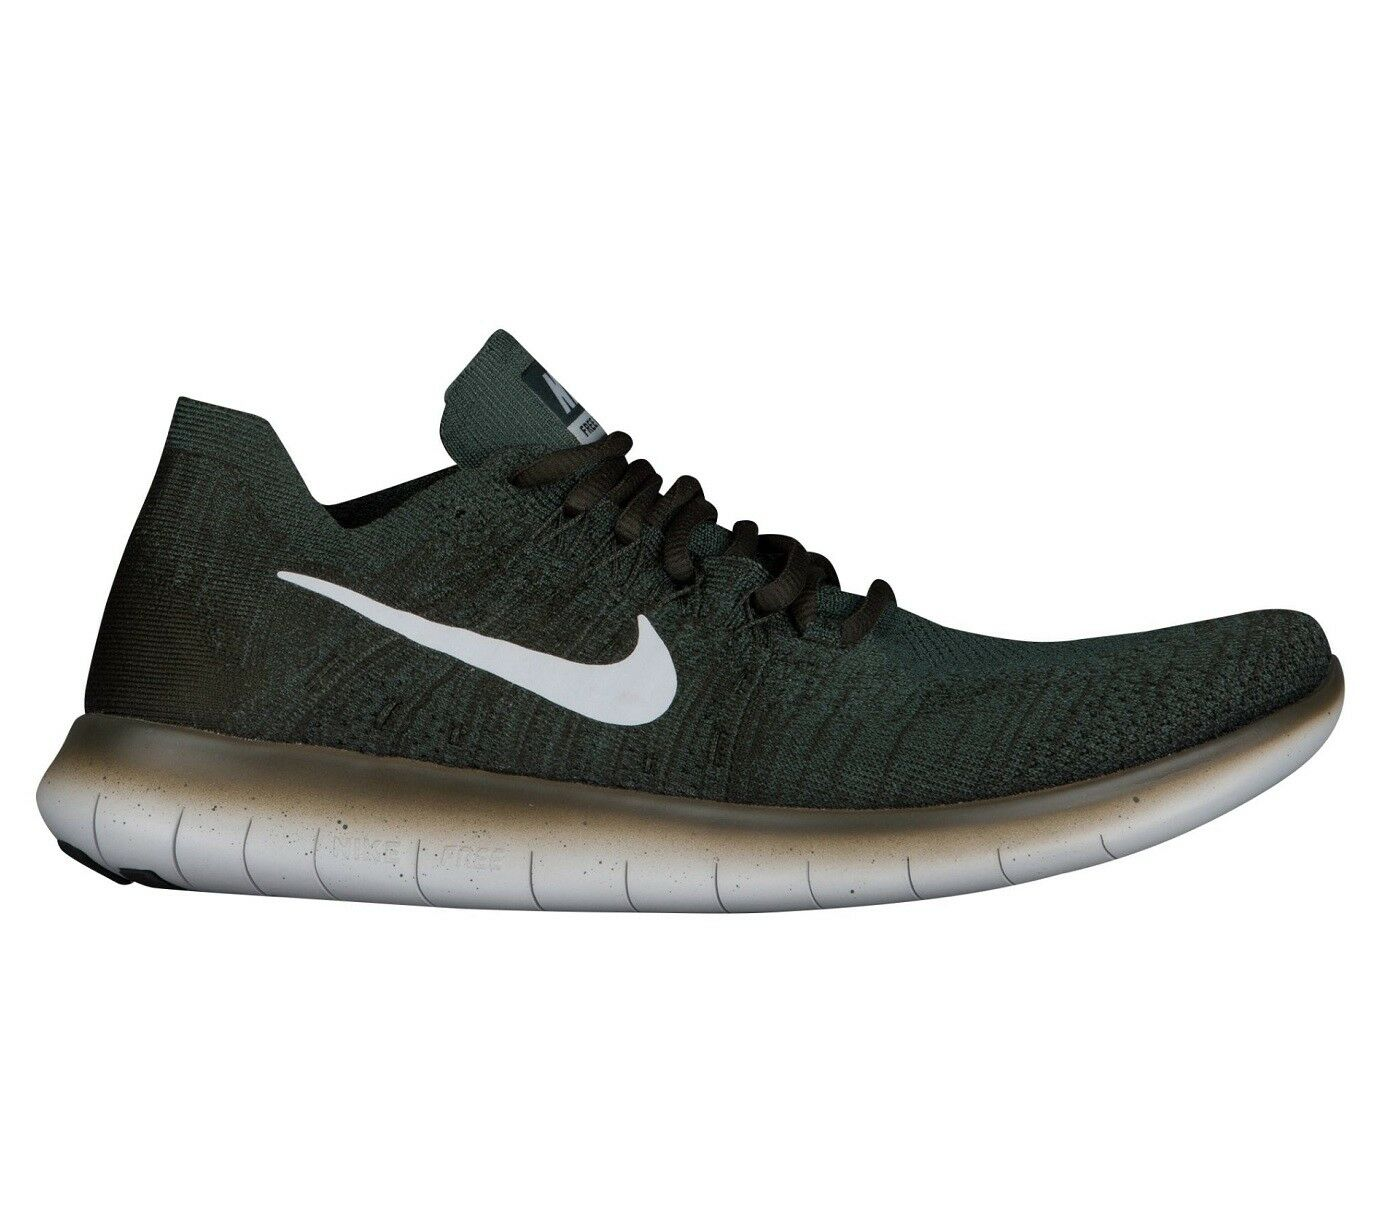 Nike Free RN Flyknit 2018 Mens 880843-300 Vintage Green Running Shoes Comfortable The latest discount shoes for men and women